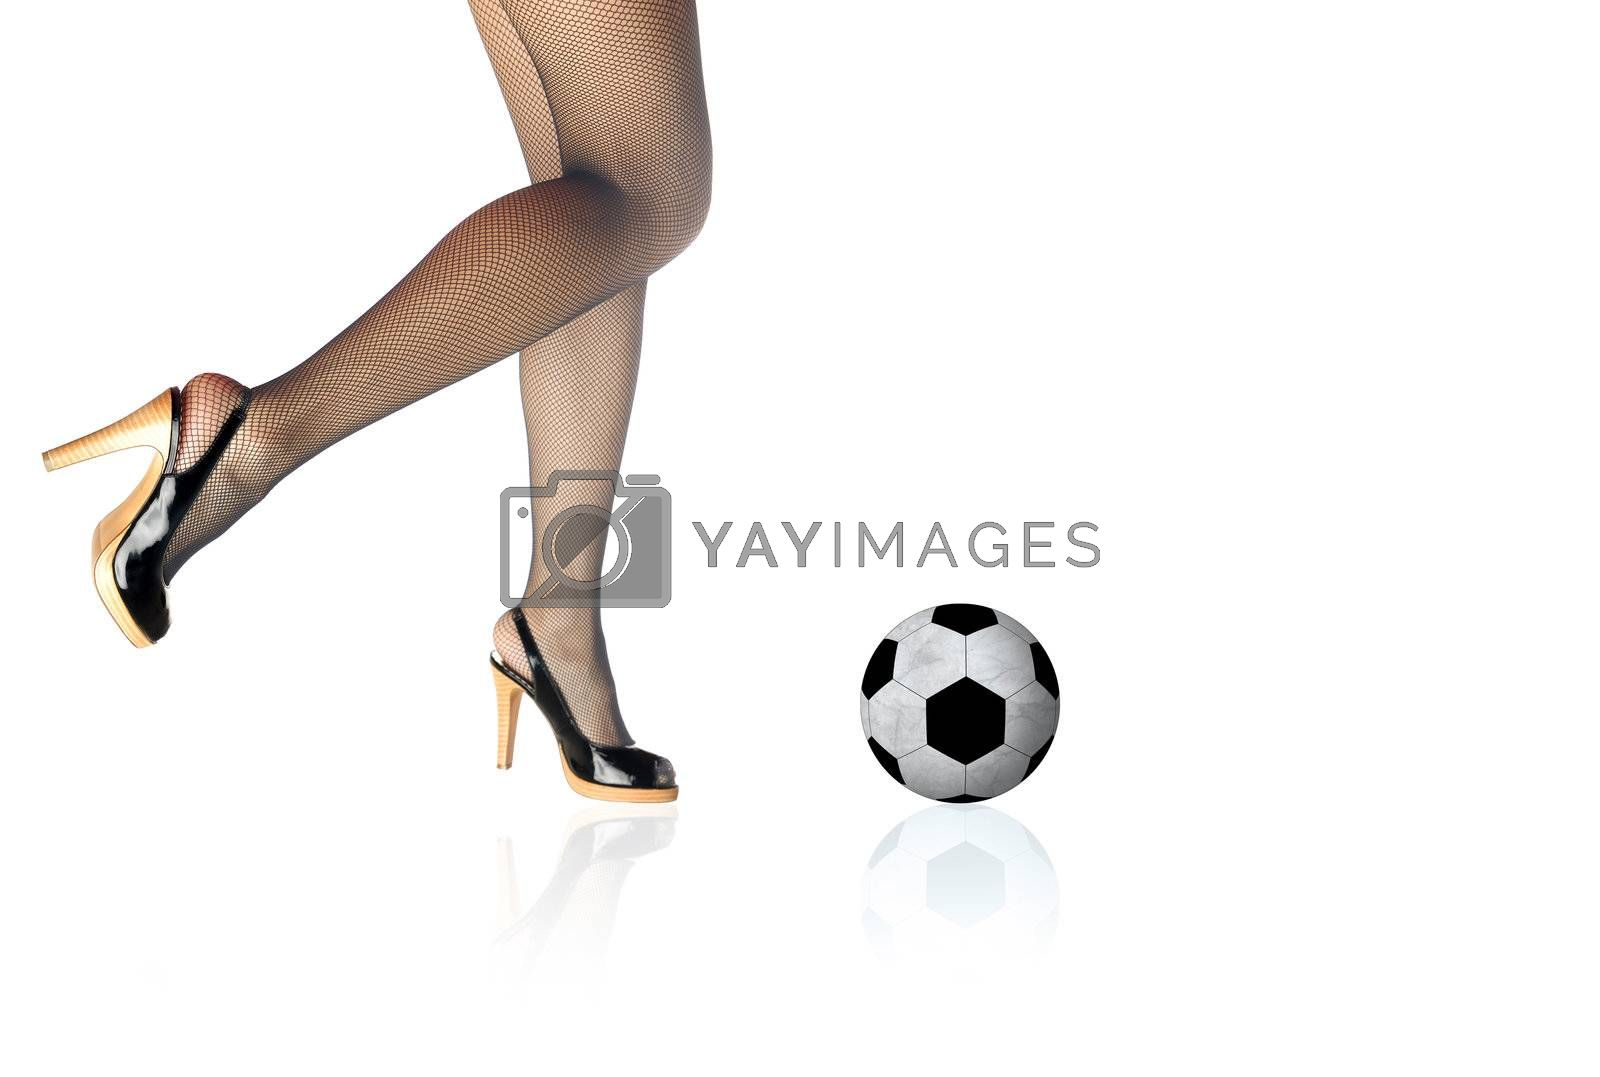 Graceful legs and football on a white background